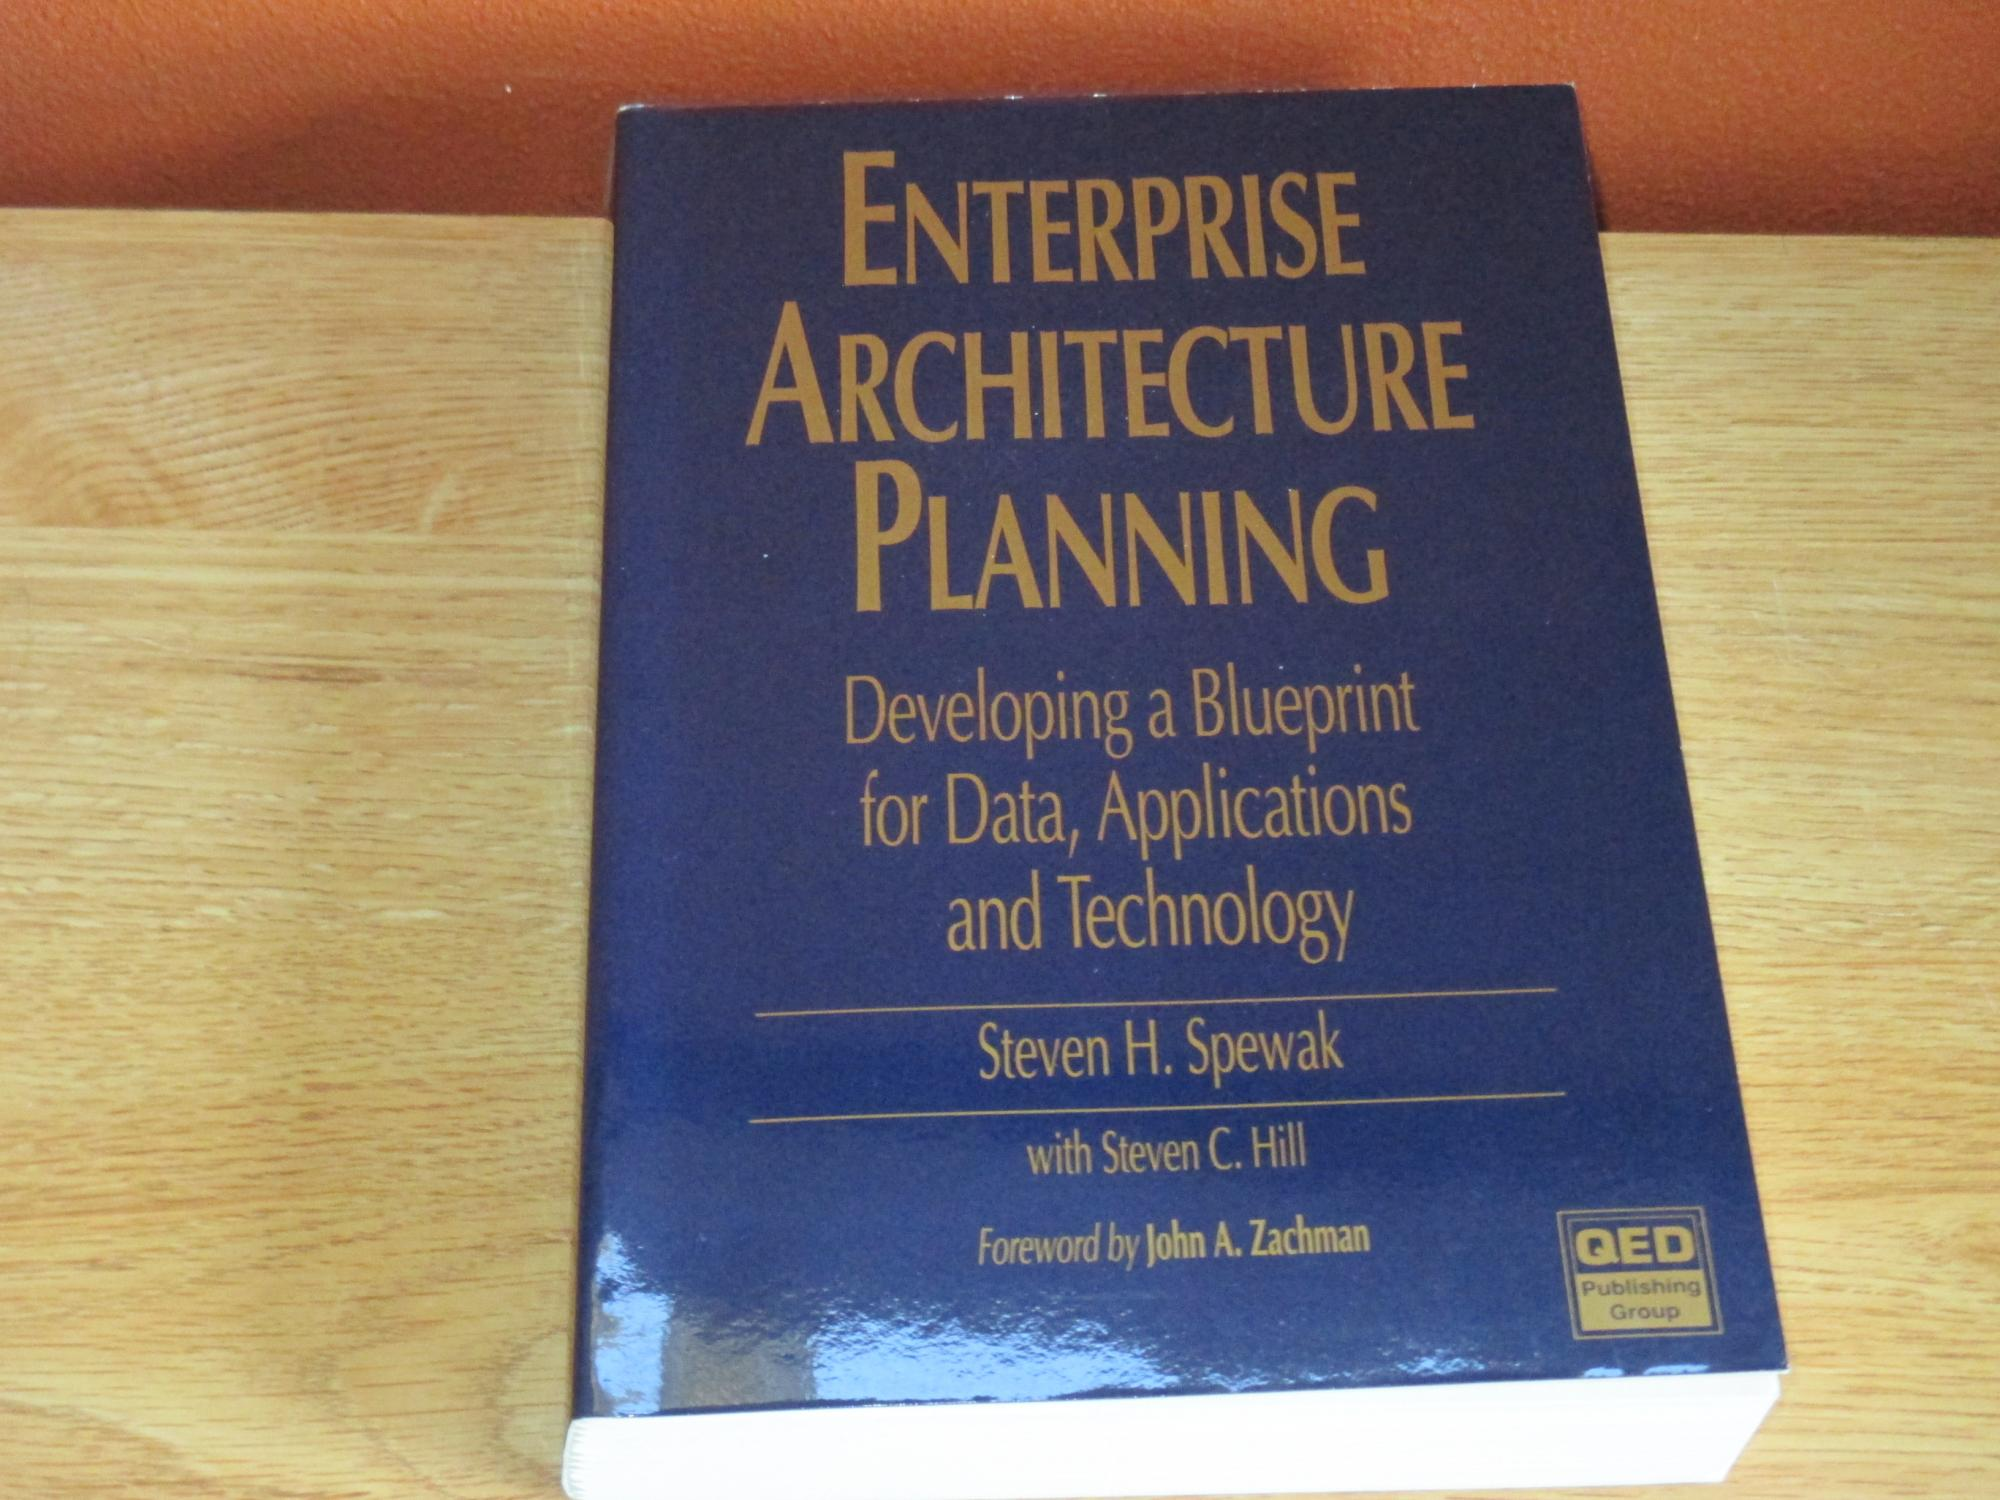 Enterprise architecture planning developing a blueprint for data enterprise architecture planning developing a blueprint for data applications and technology malvernweather Image collections